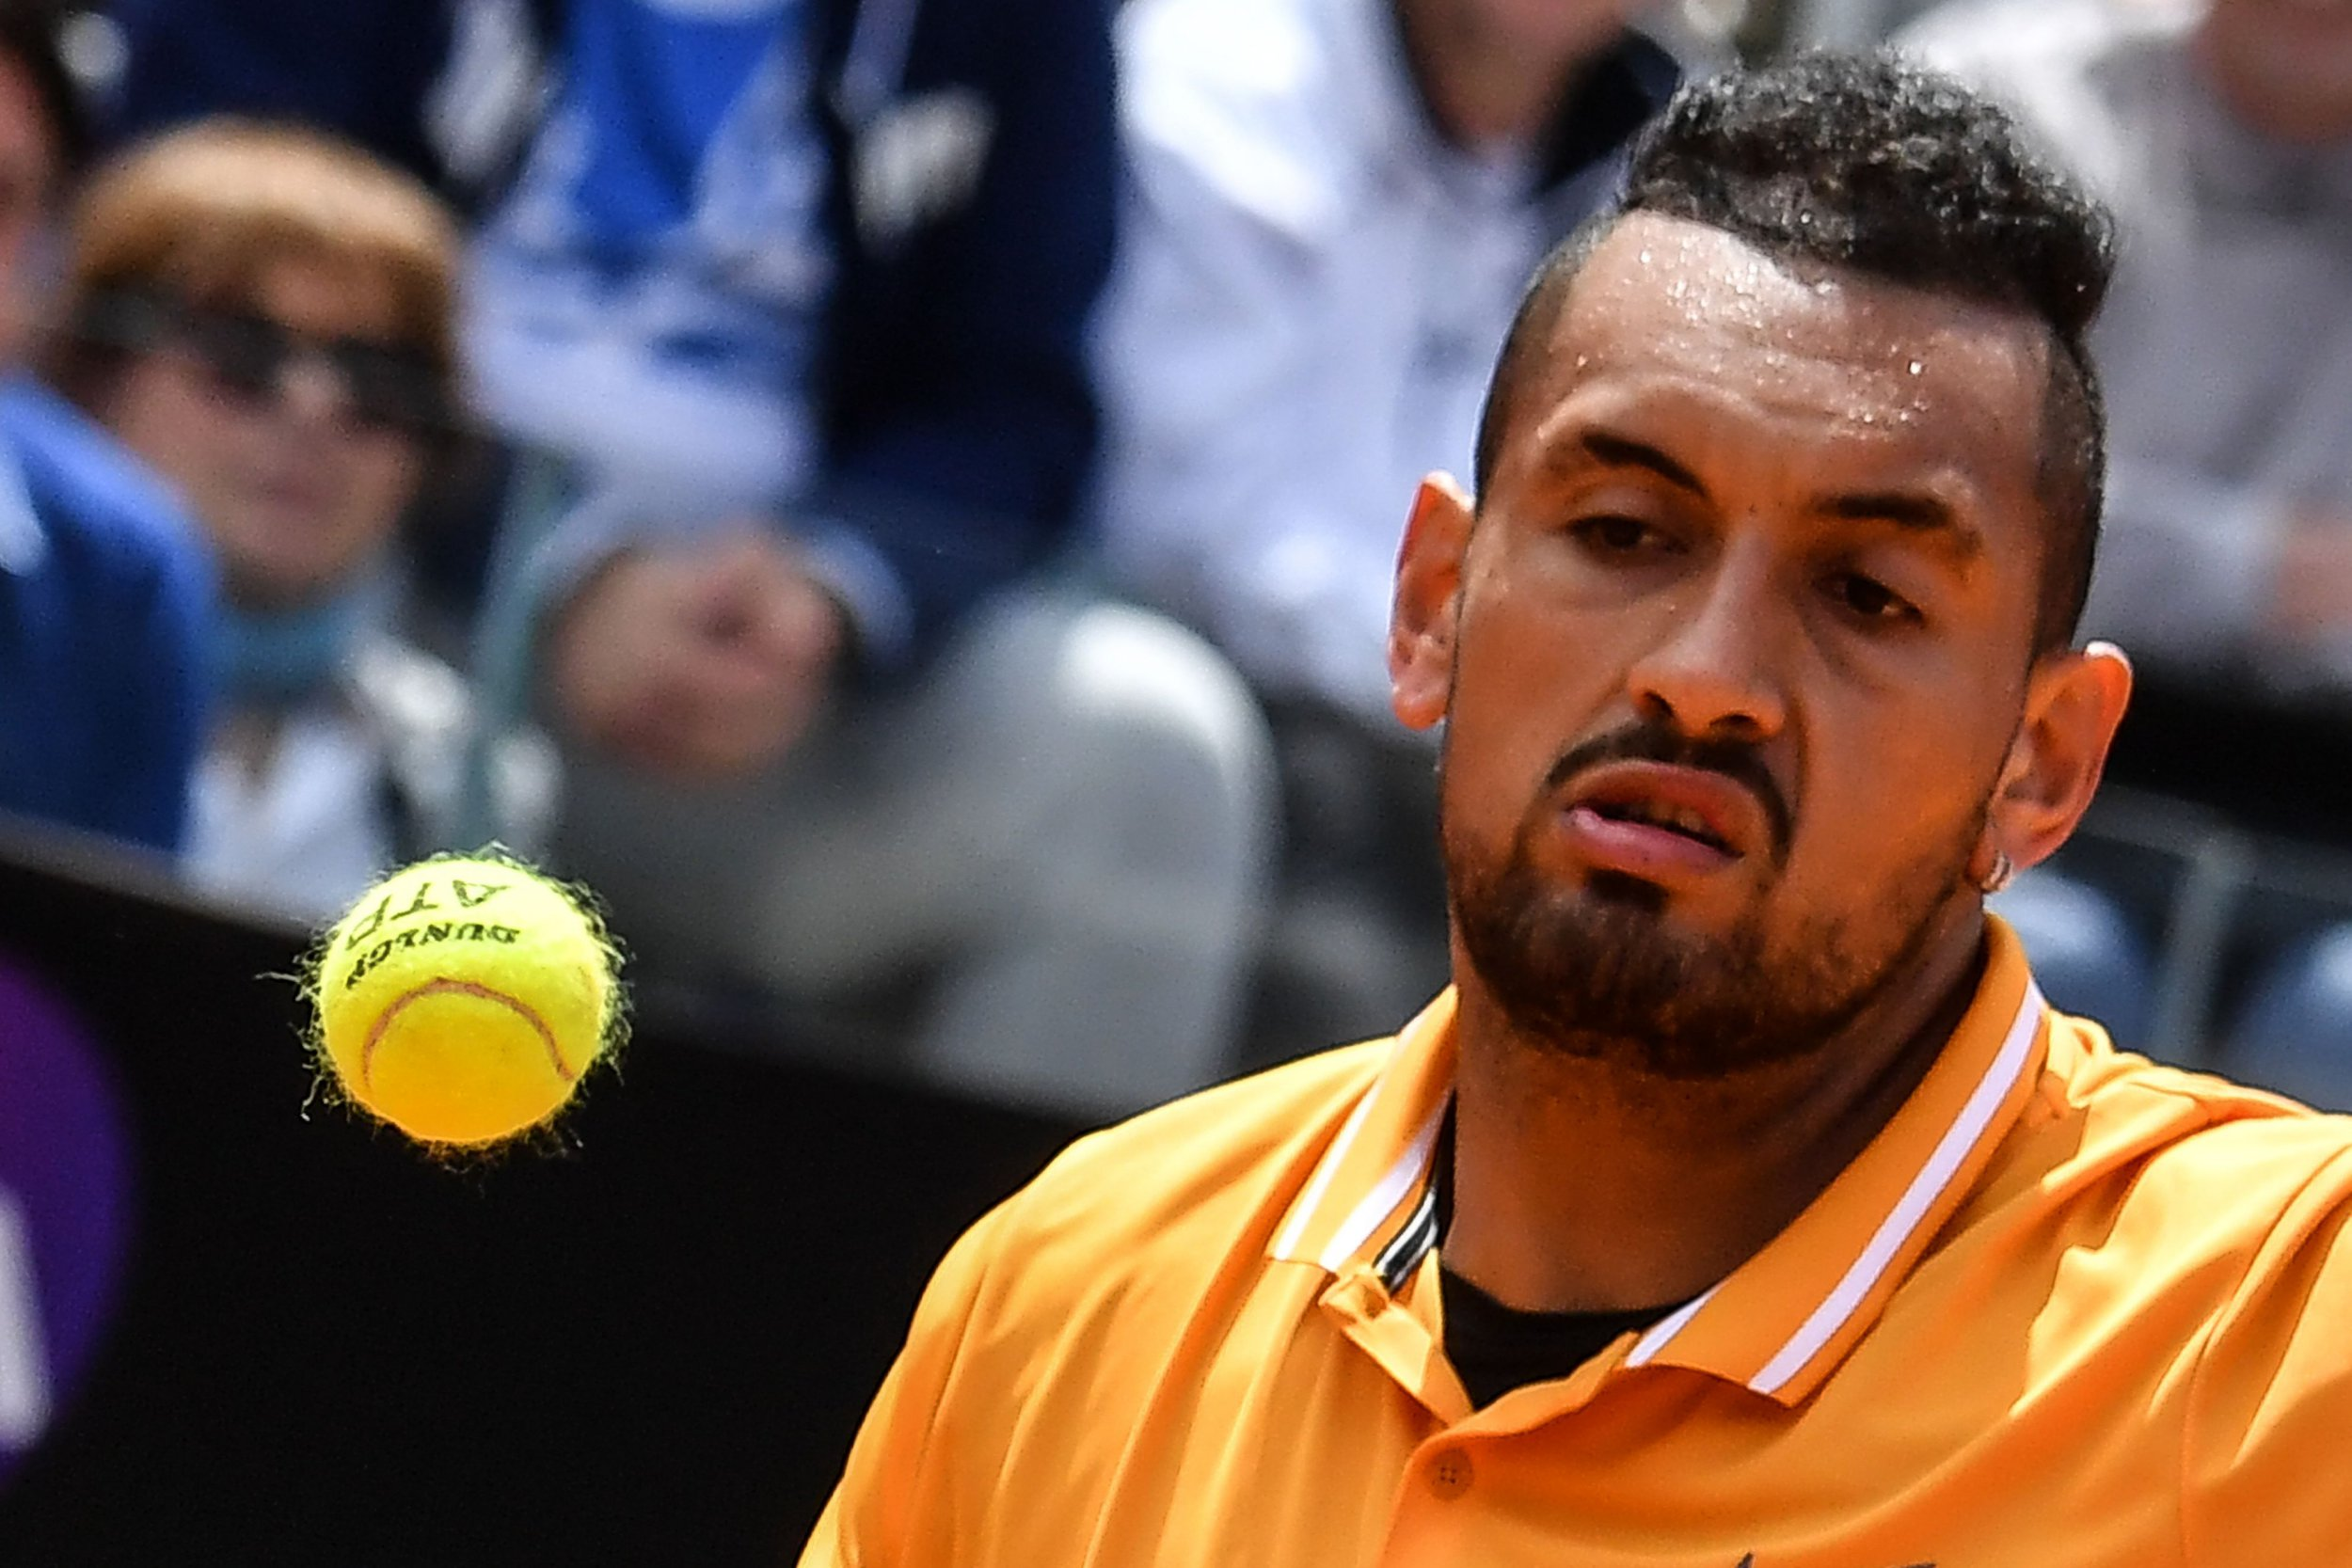 What furious Nick Kyrgios yelled at fans in foul-mouthed rant before throwing chair